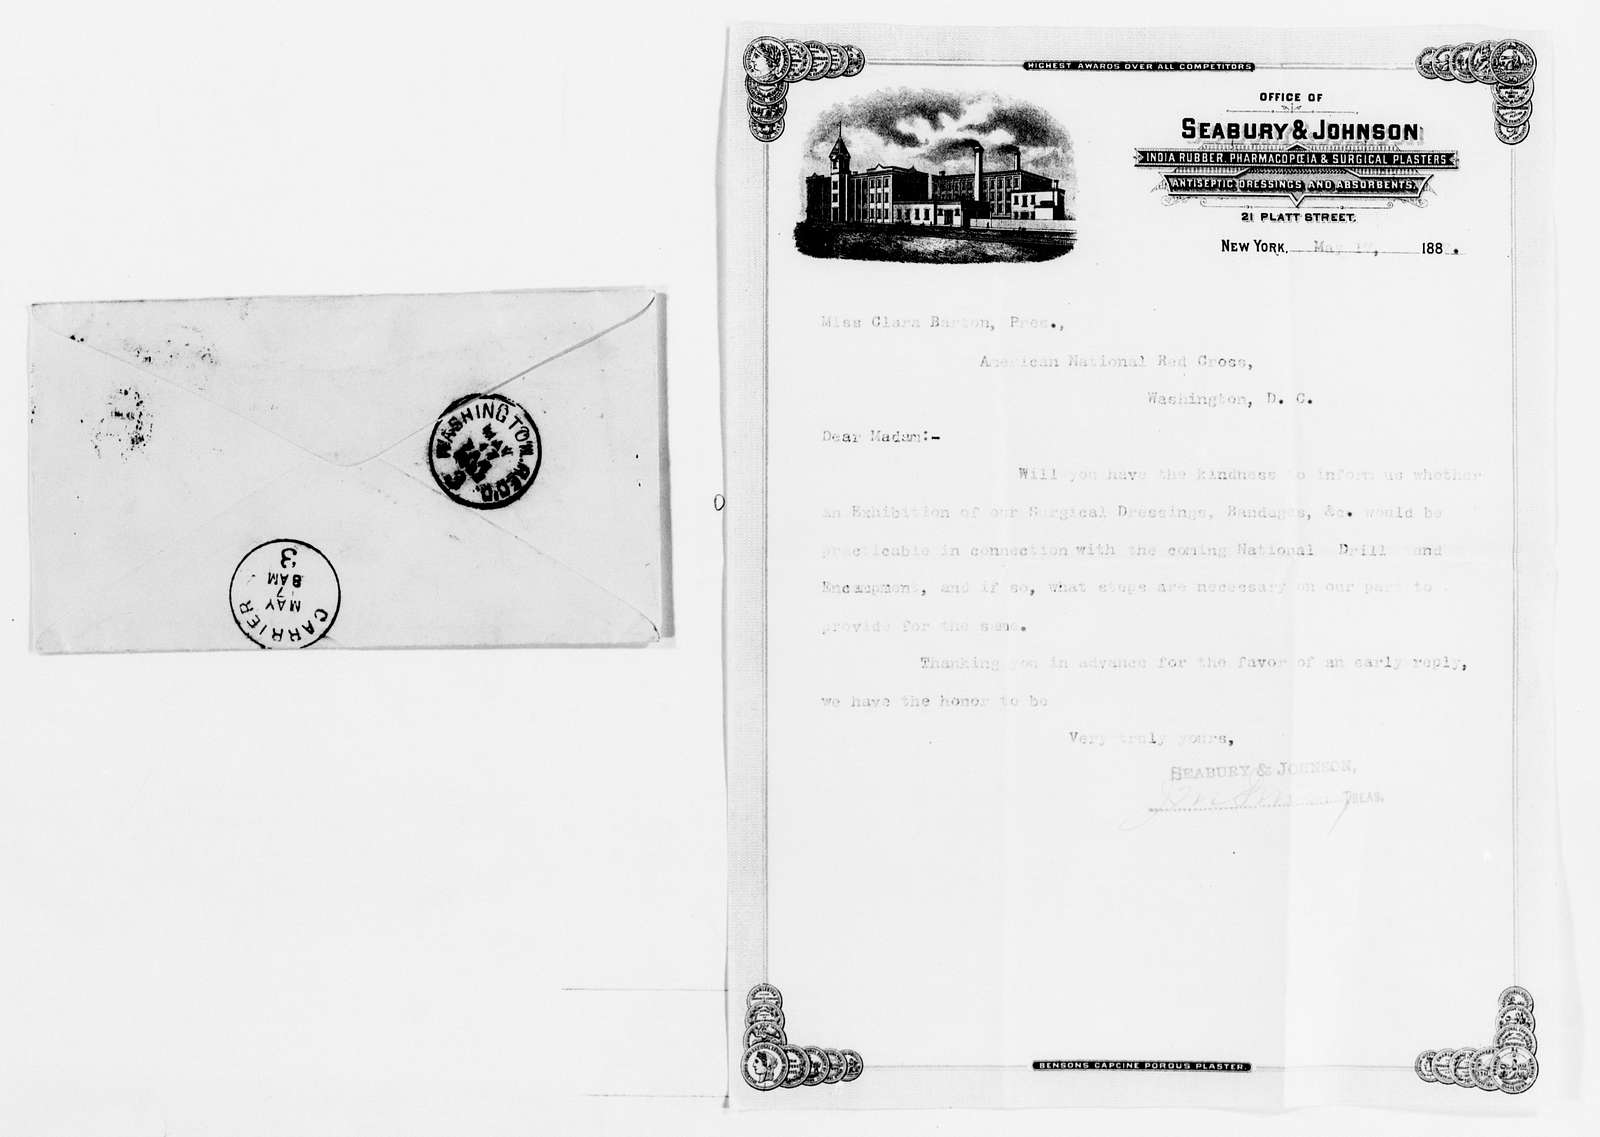 Clara Barton Papers: Red Cross File, 1863-1957; American National Red Cross, 1878-1957; Drills and encampments; National Drill and Encampment, Washington, D.C., 1887